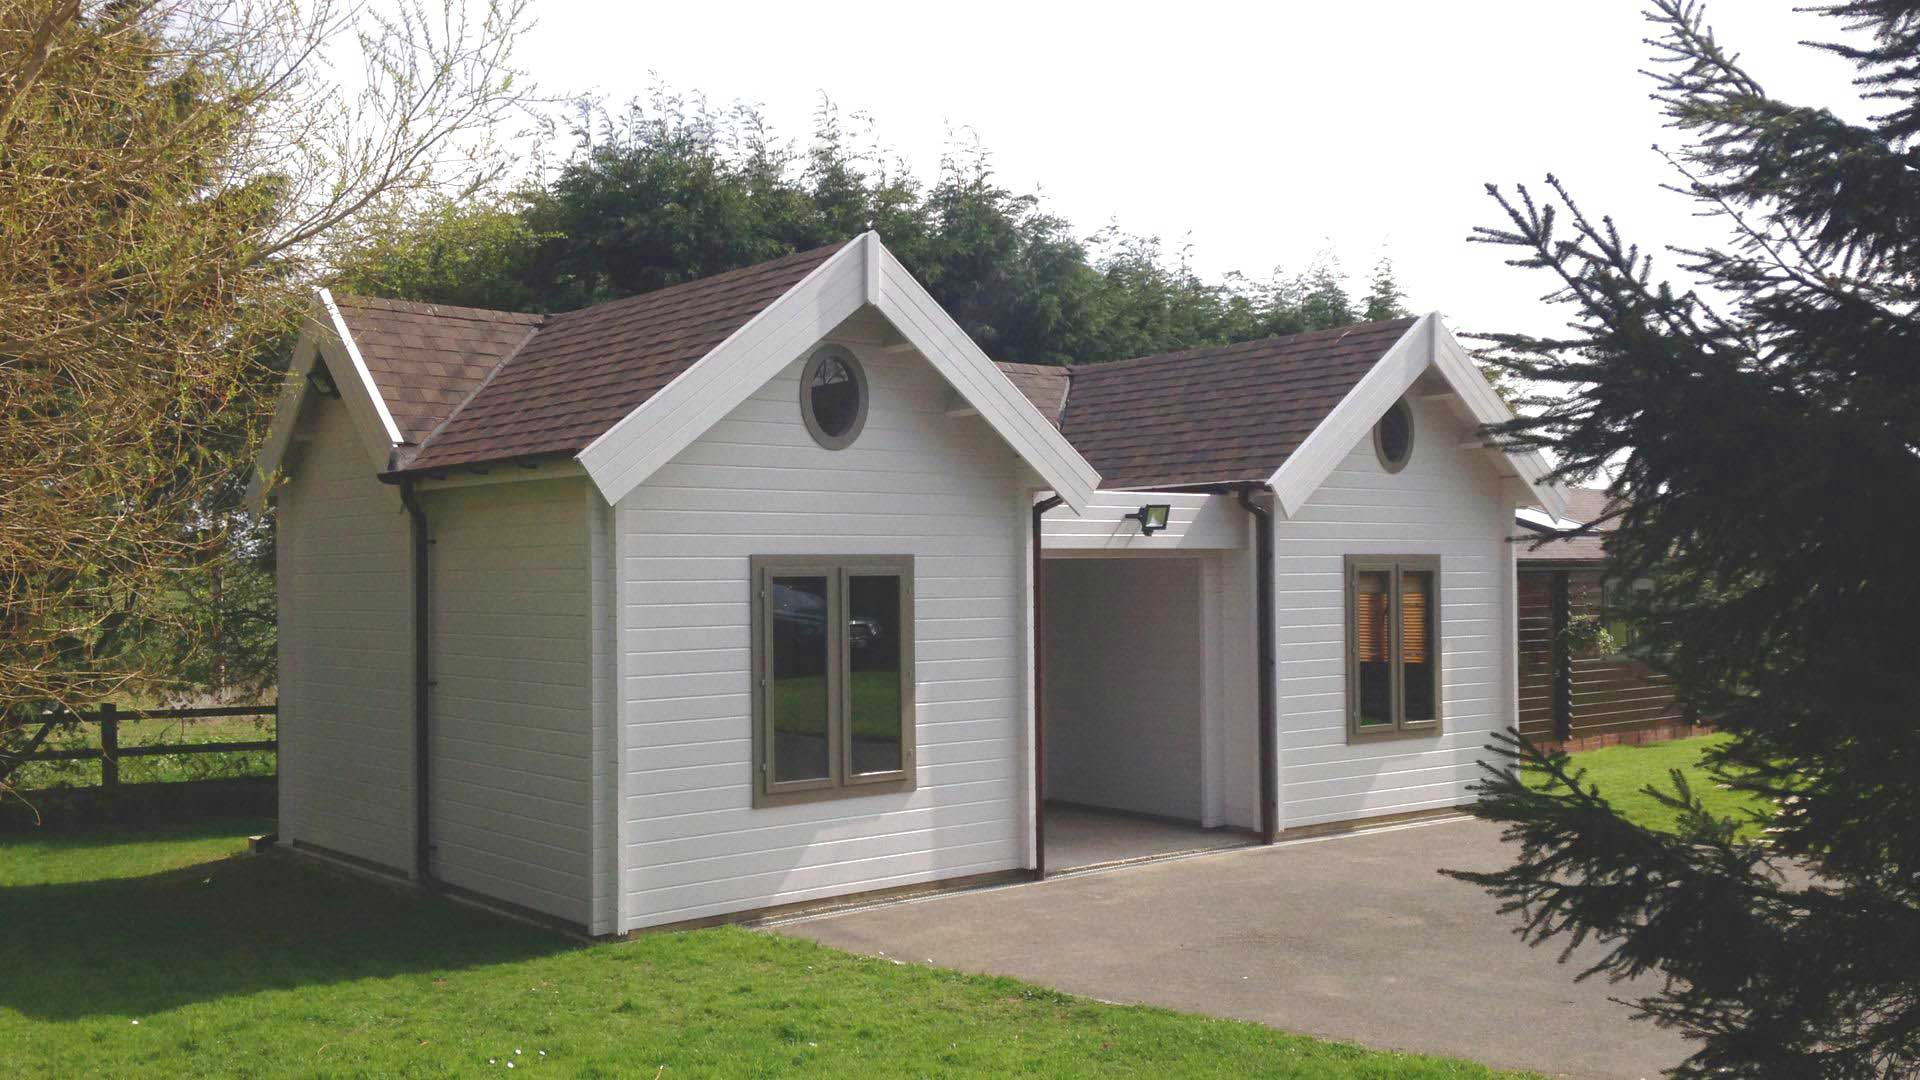 Keops Interlock - log cabins tailor made any size or layout